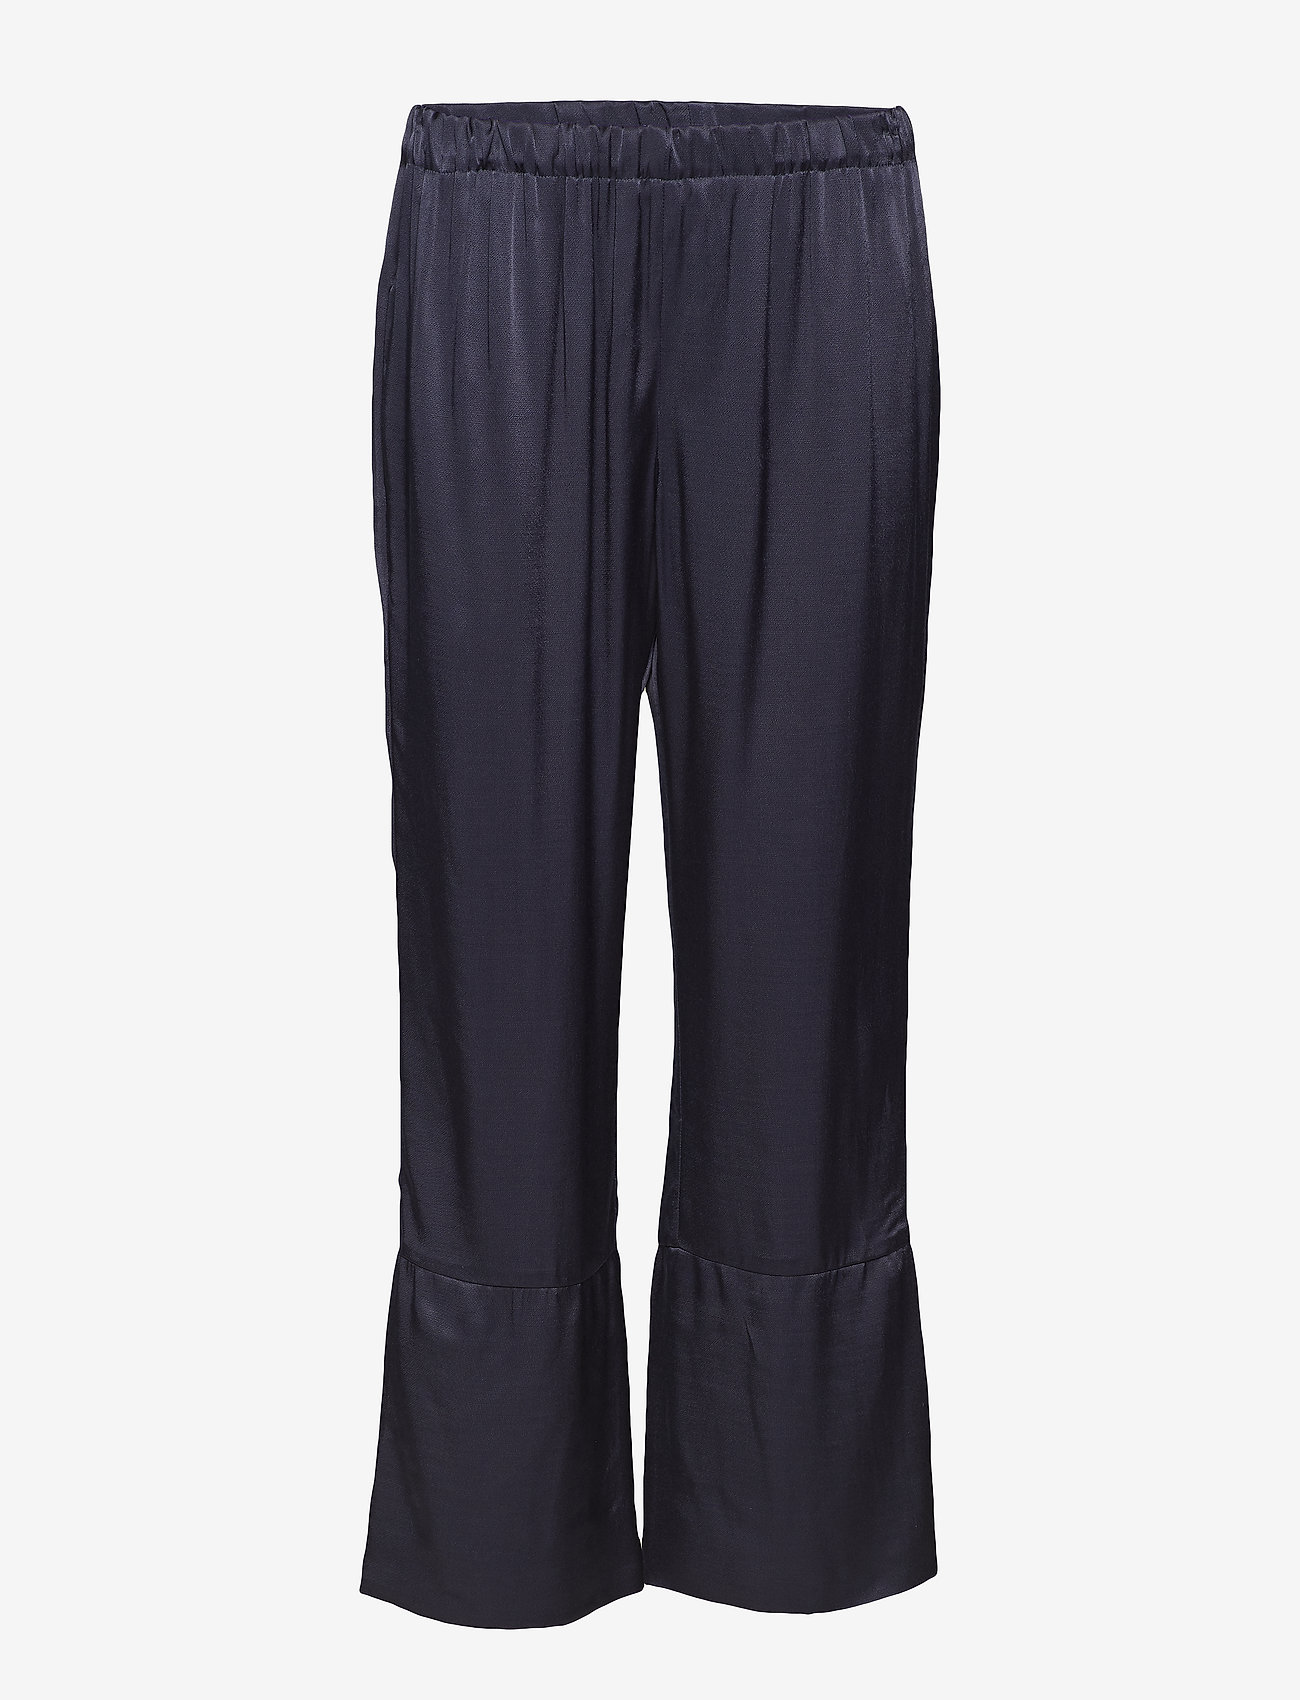 Diana Orving - Trousers - trousers - blue